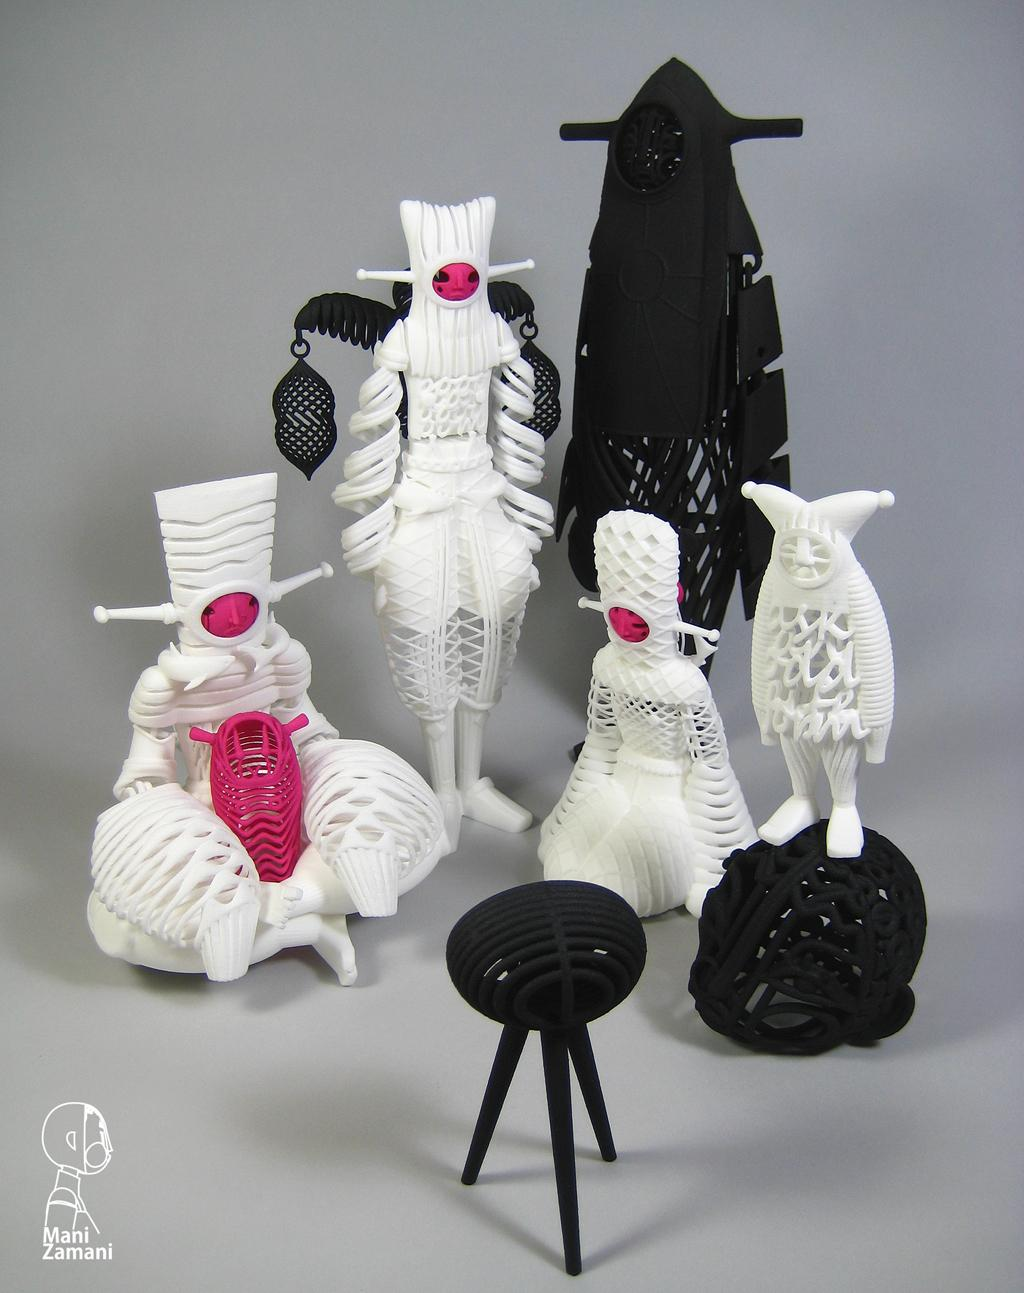 Mani Zamani S 3d Printed Collectors Grade Toys Completely